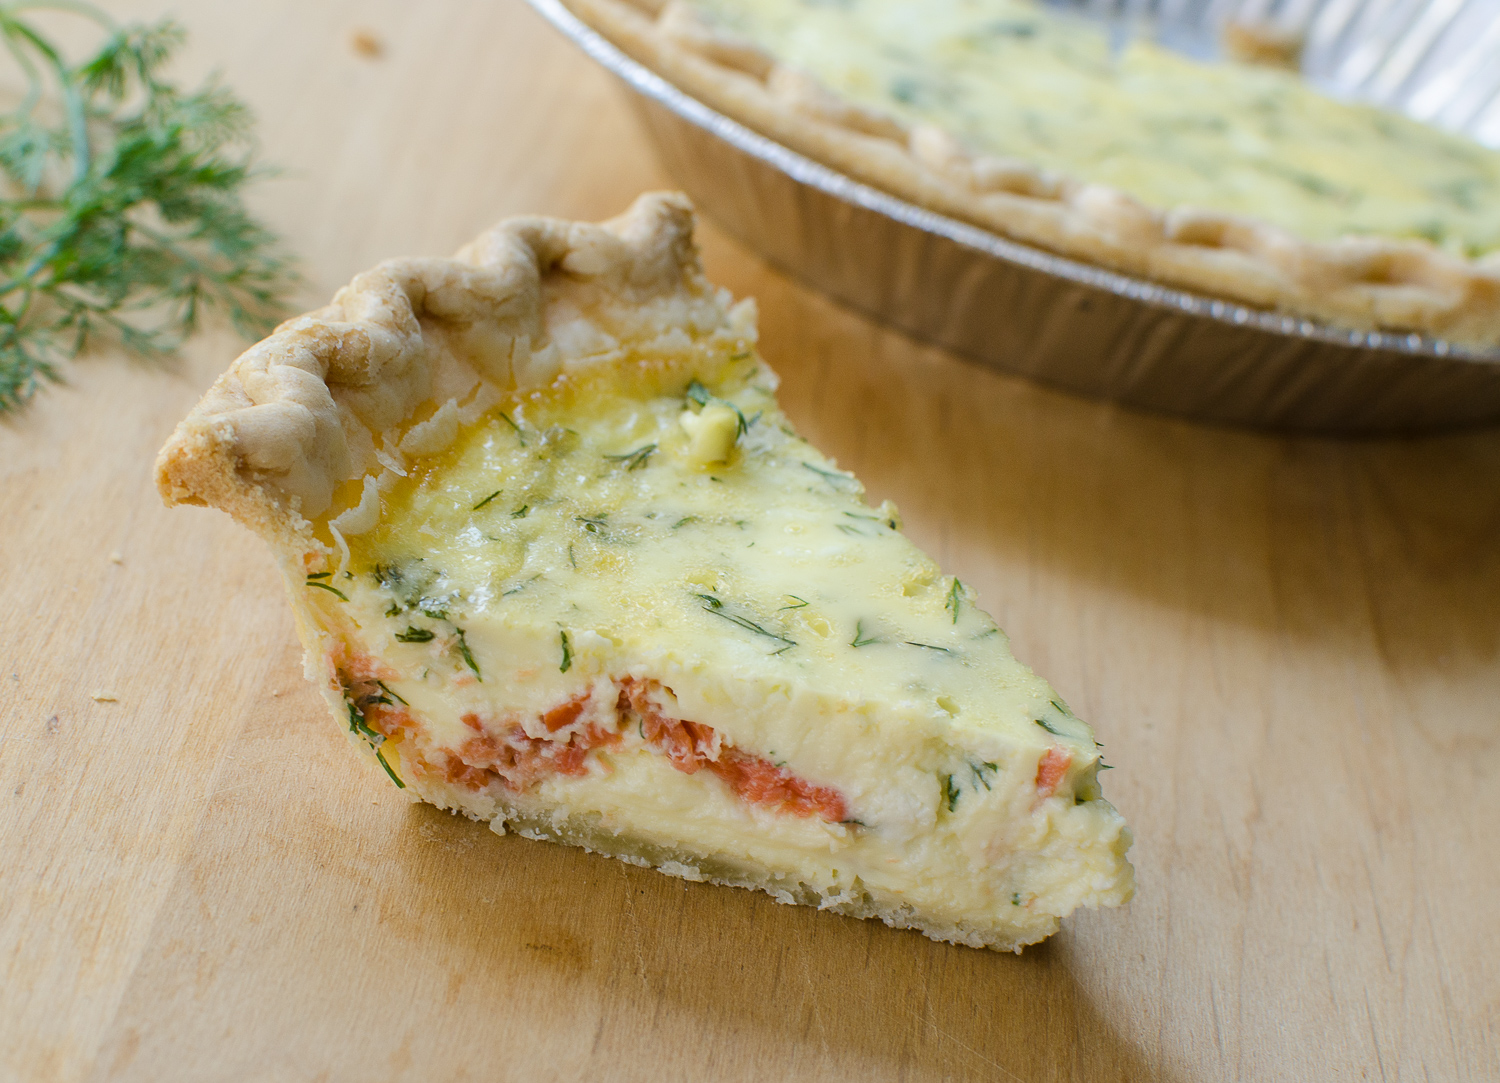 Transform Your Leftovers Into an Amazing Quiche